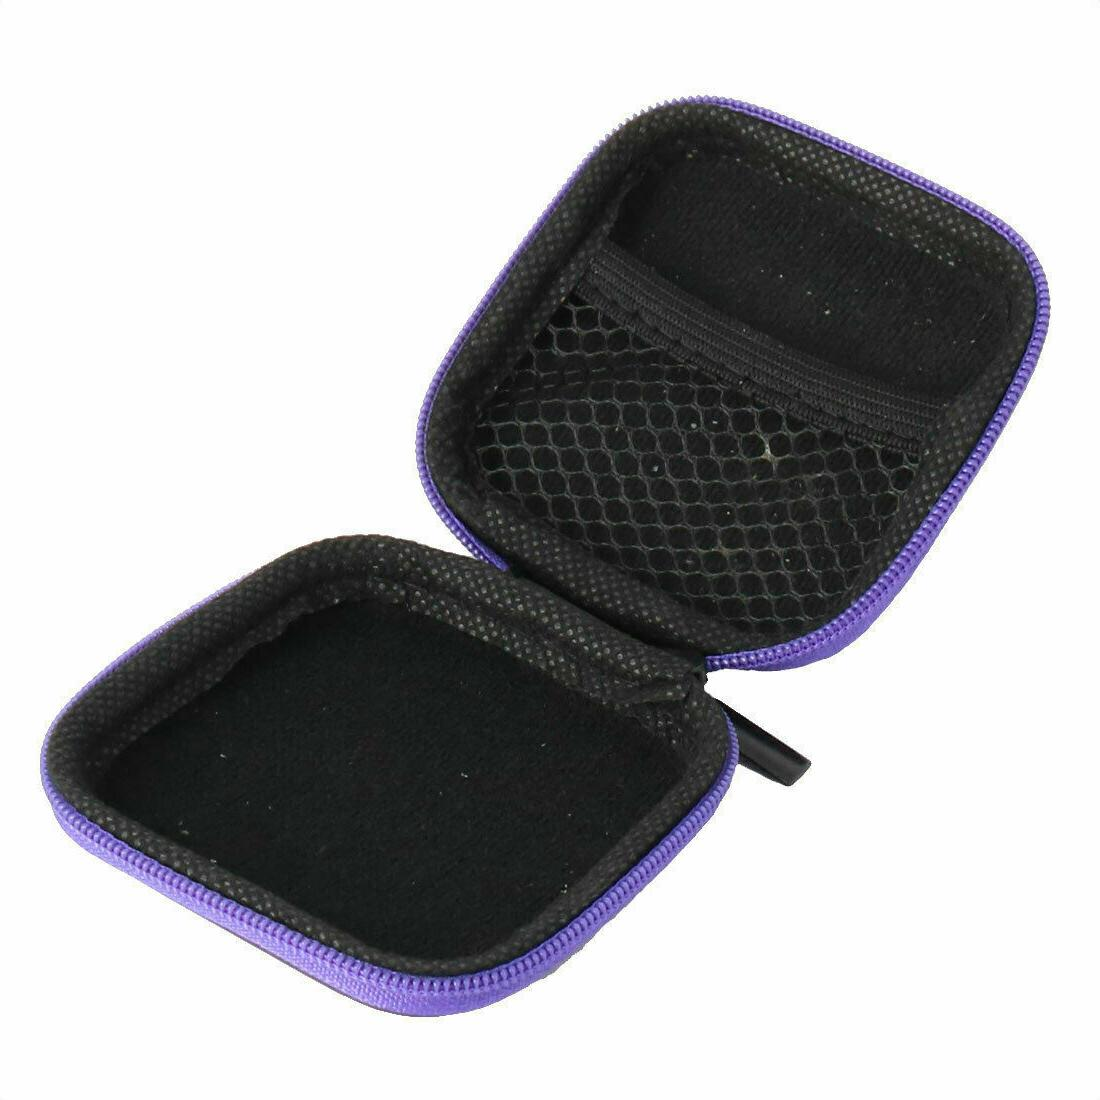 Cellphone Square Carrying Pouch